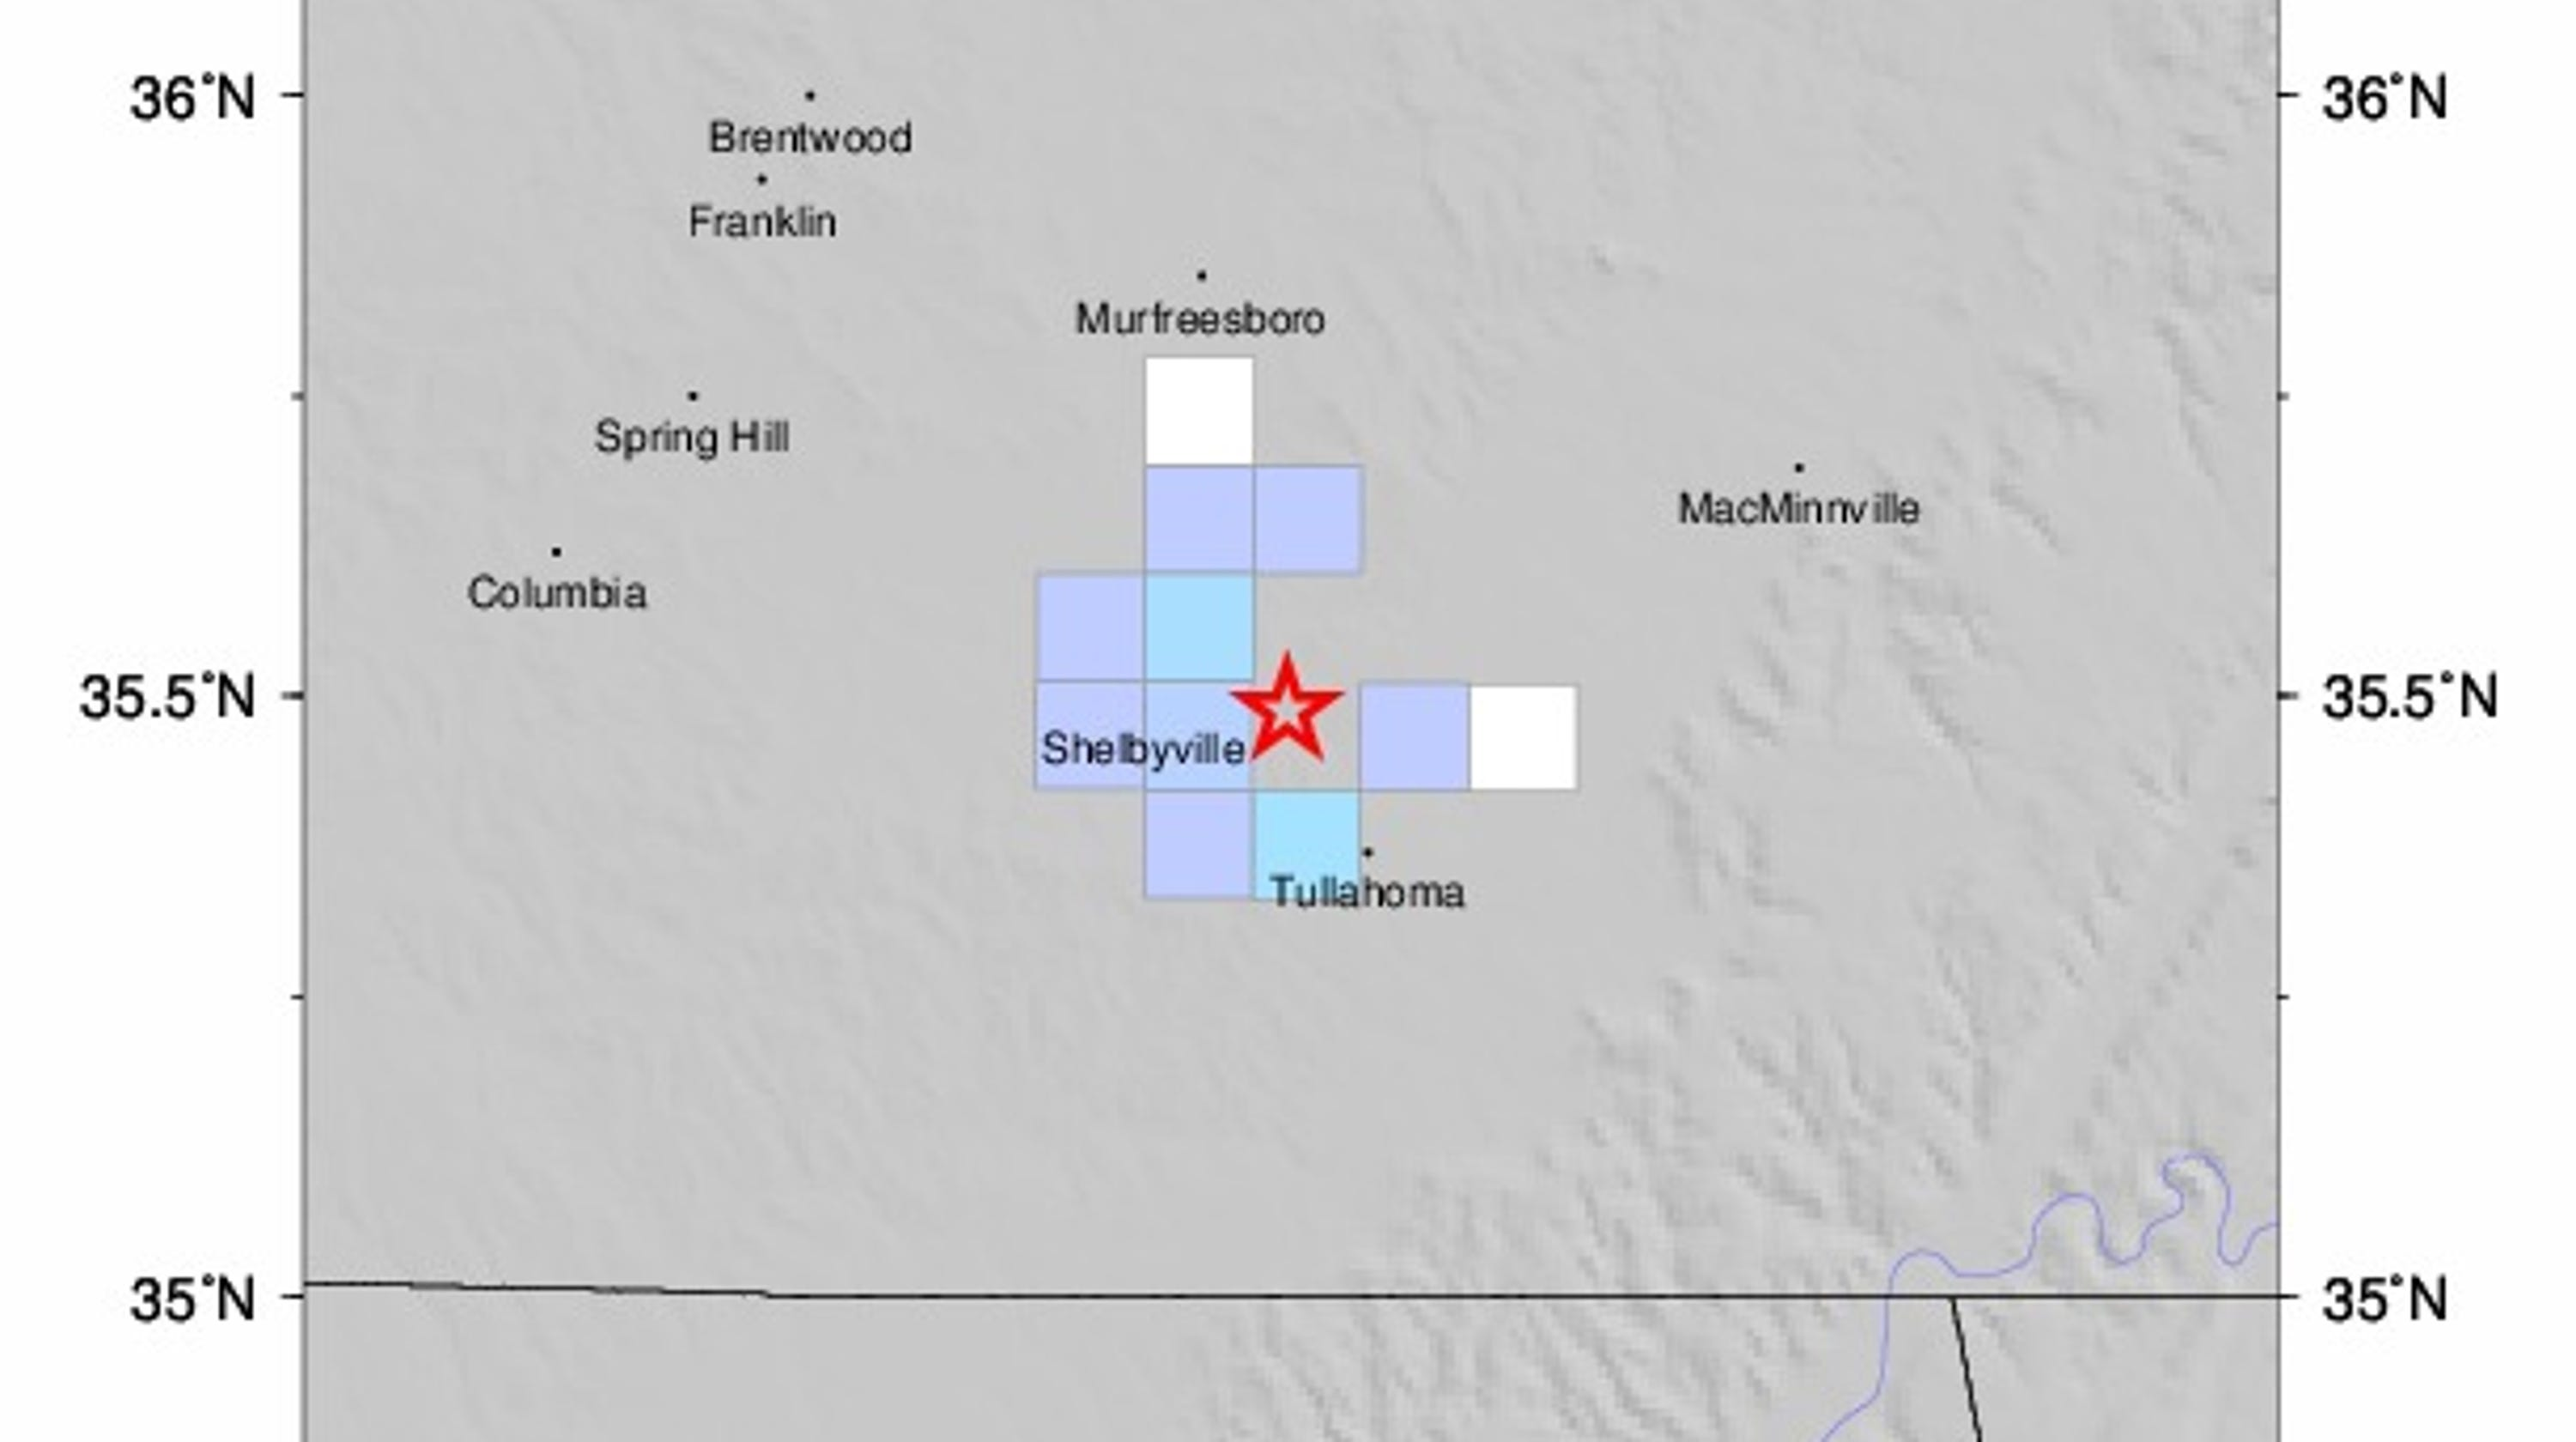 Earthquake in Tennessee latest in string reported by USGS